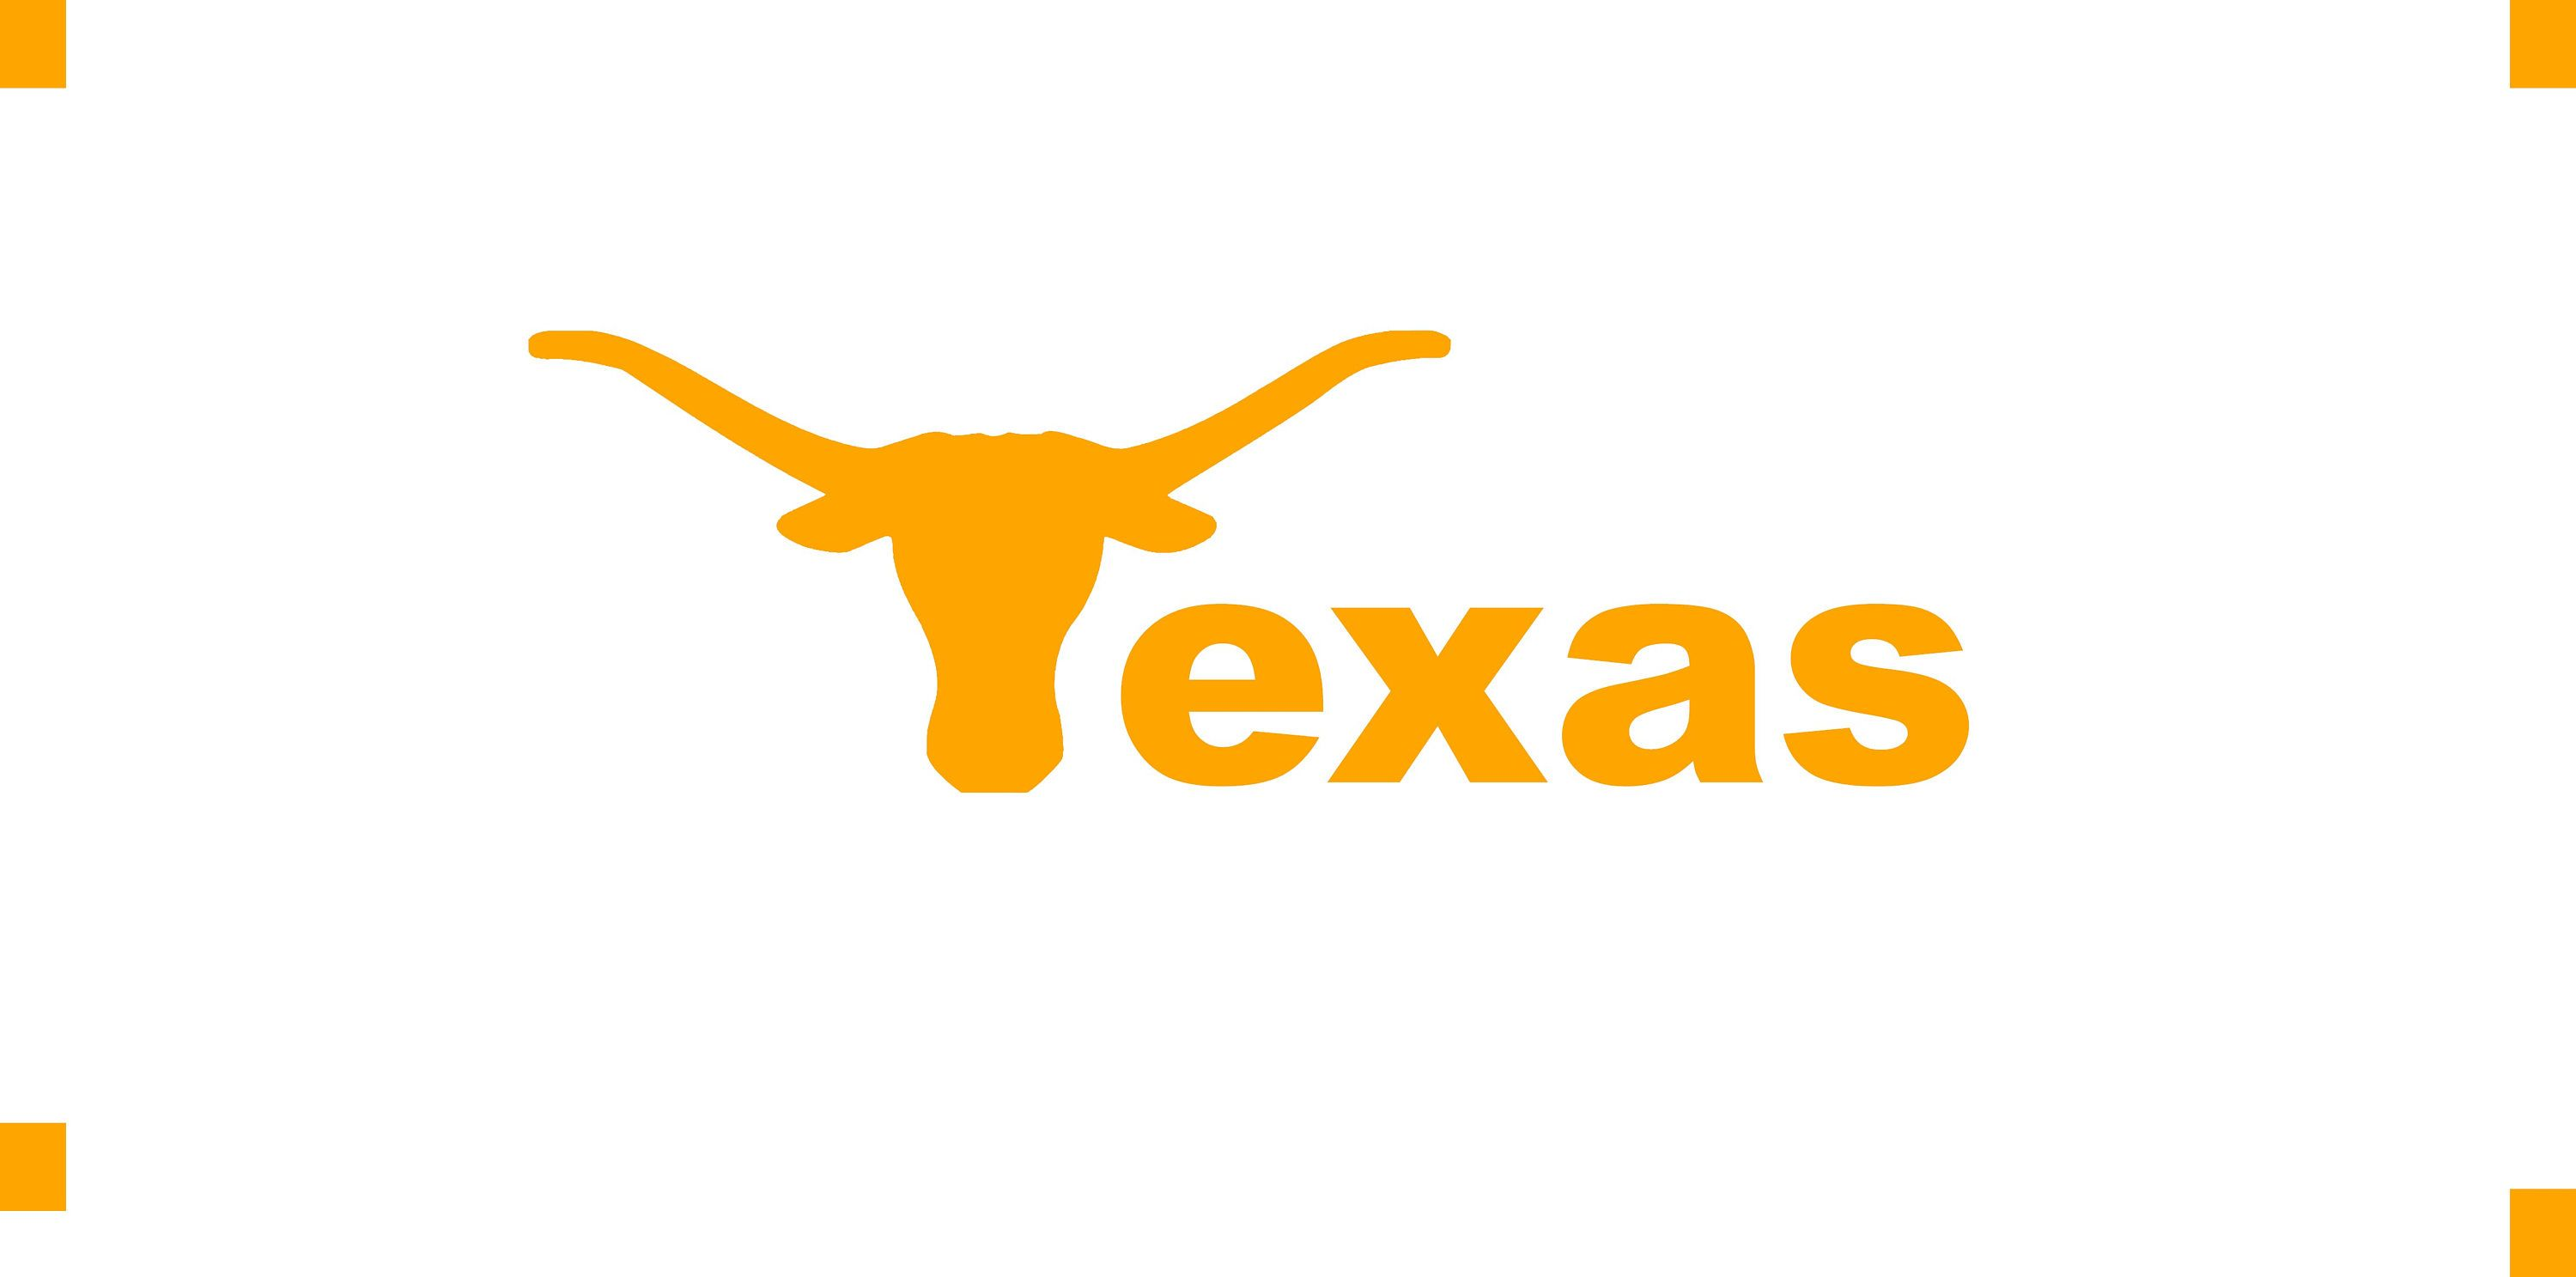 Texas Longhorn Decal By Riverbendgraphics On Etsy Texas